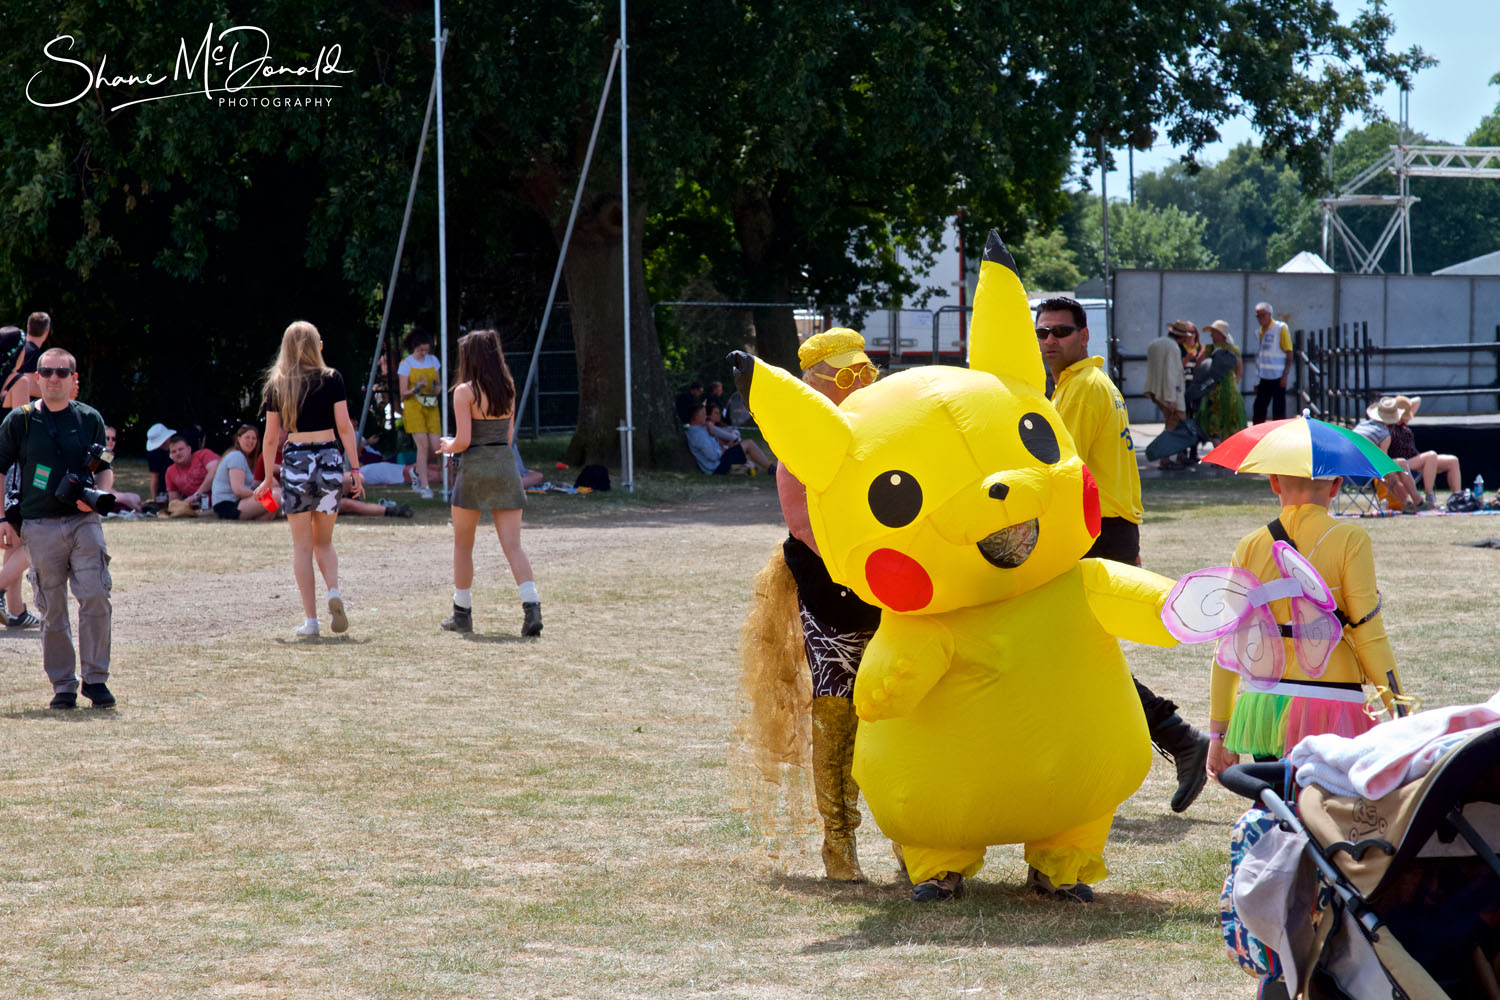 Picachu at the Isle of Wight Festival